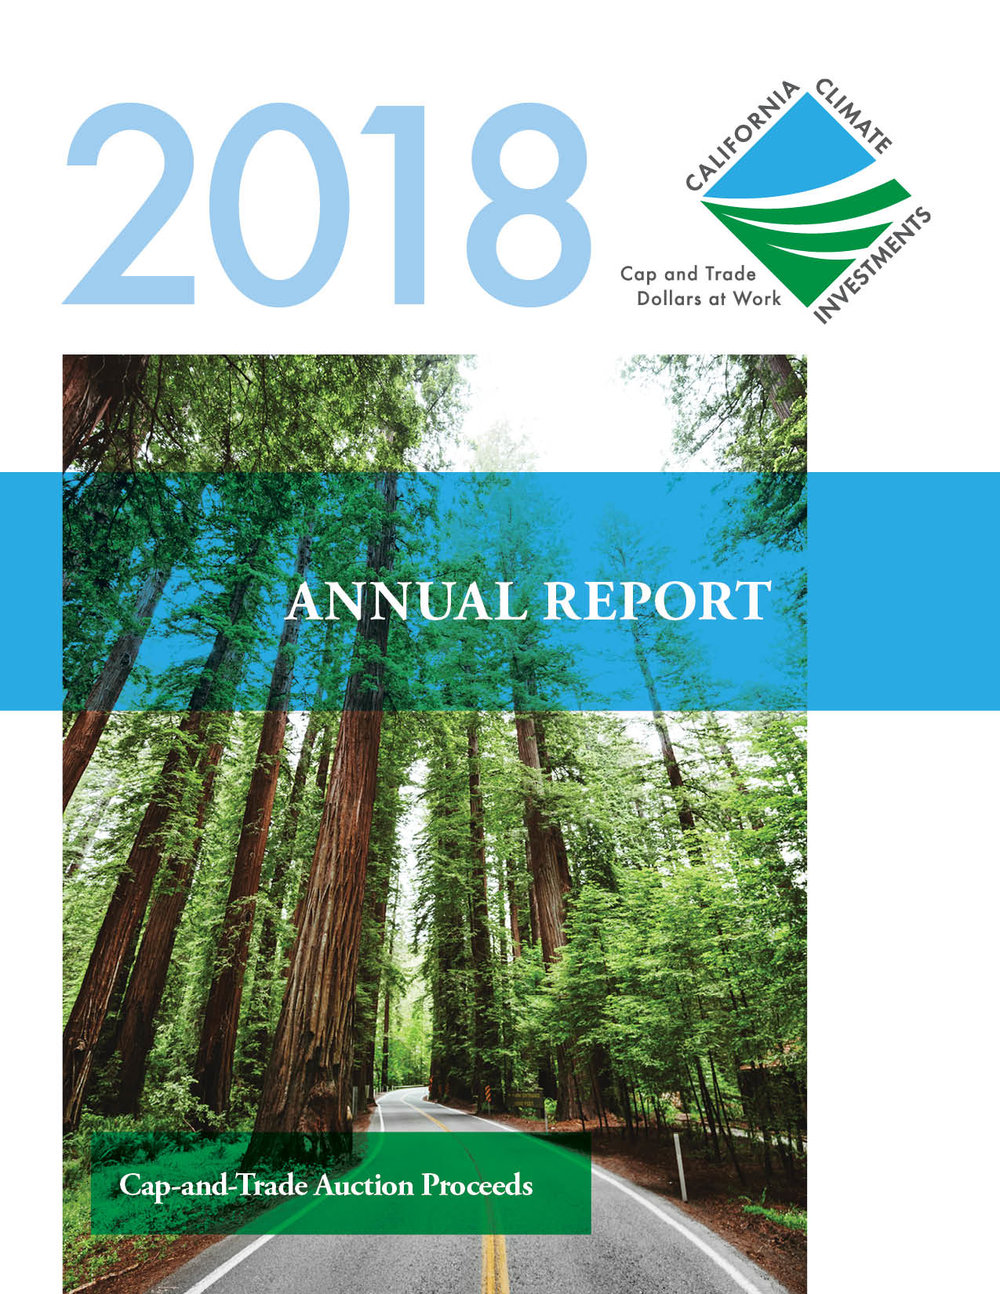 CCI_annual_report_cover.jpg